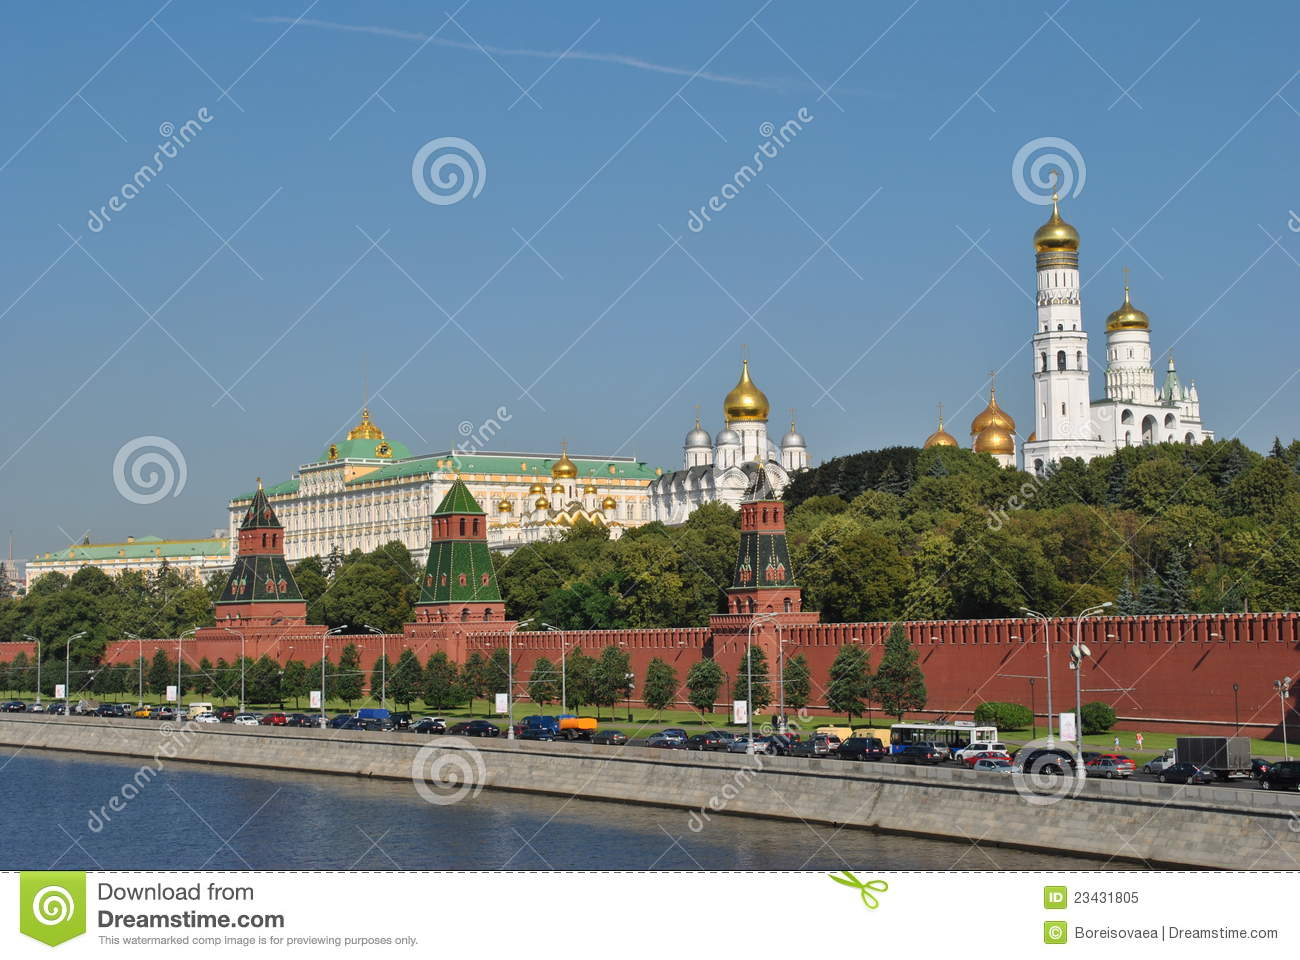 Moskow kremlin view from river, photo